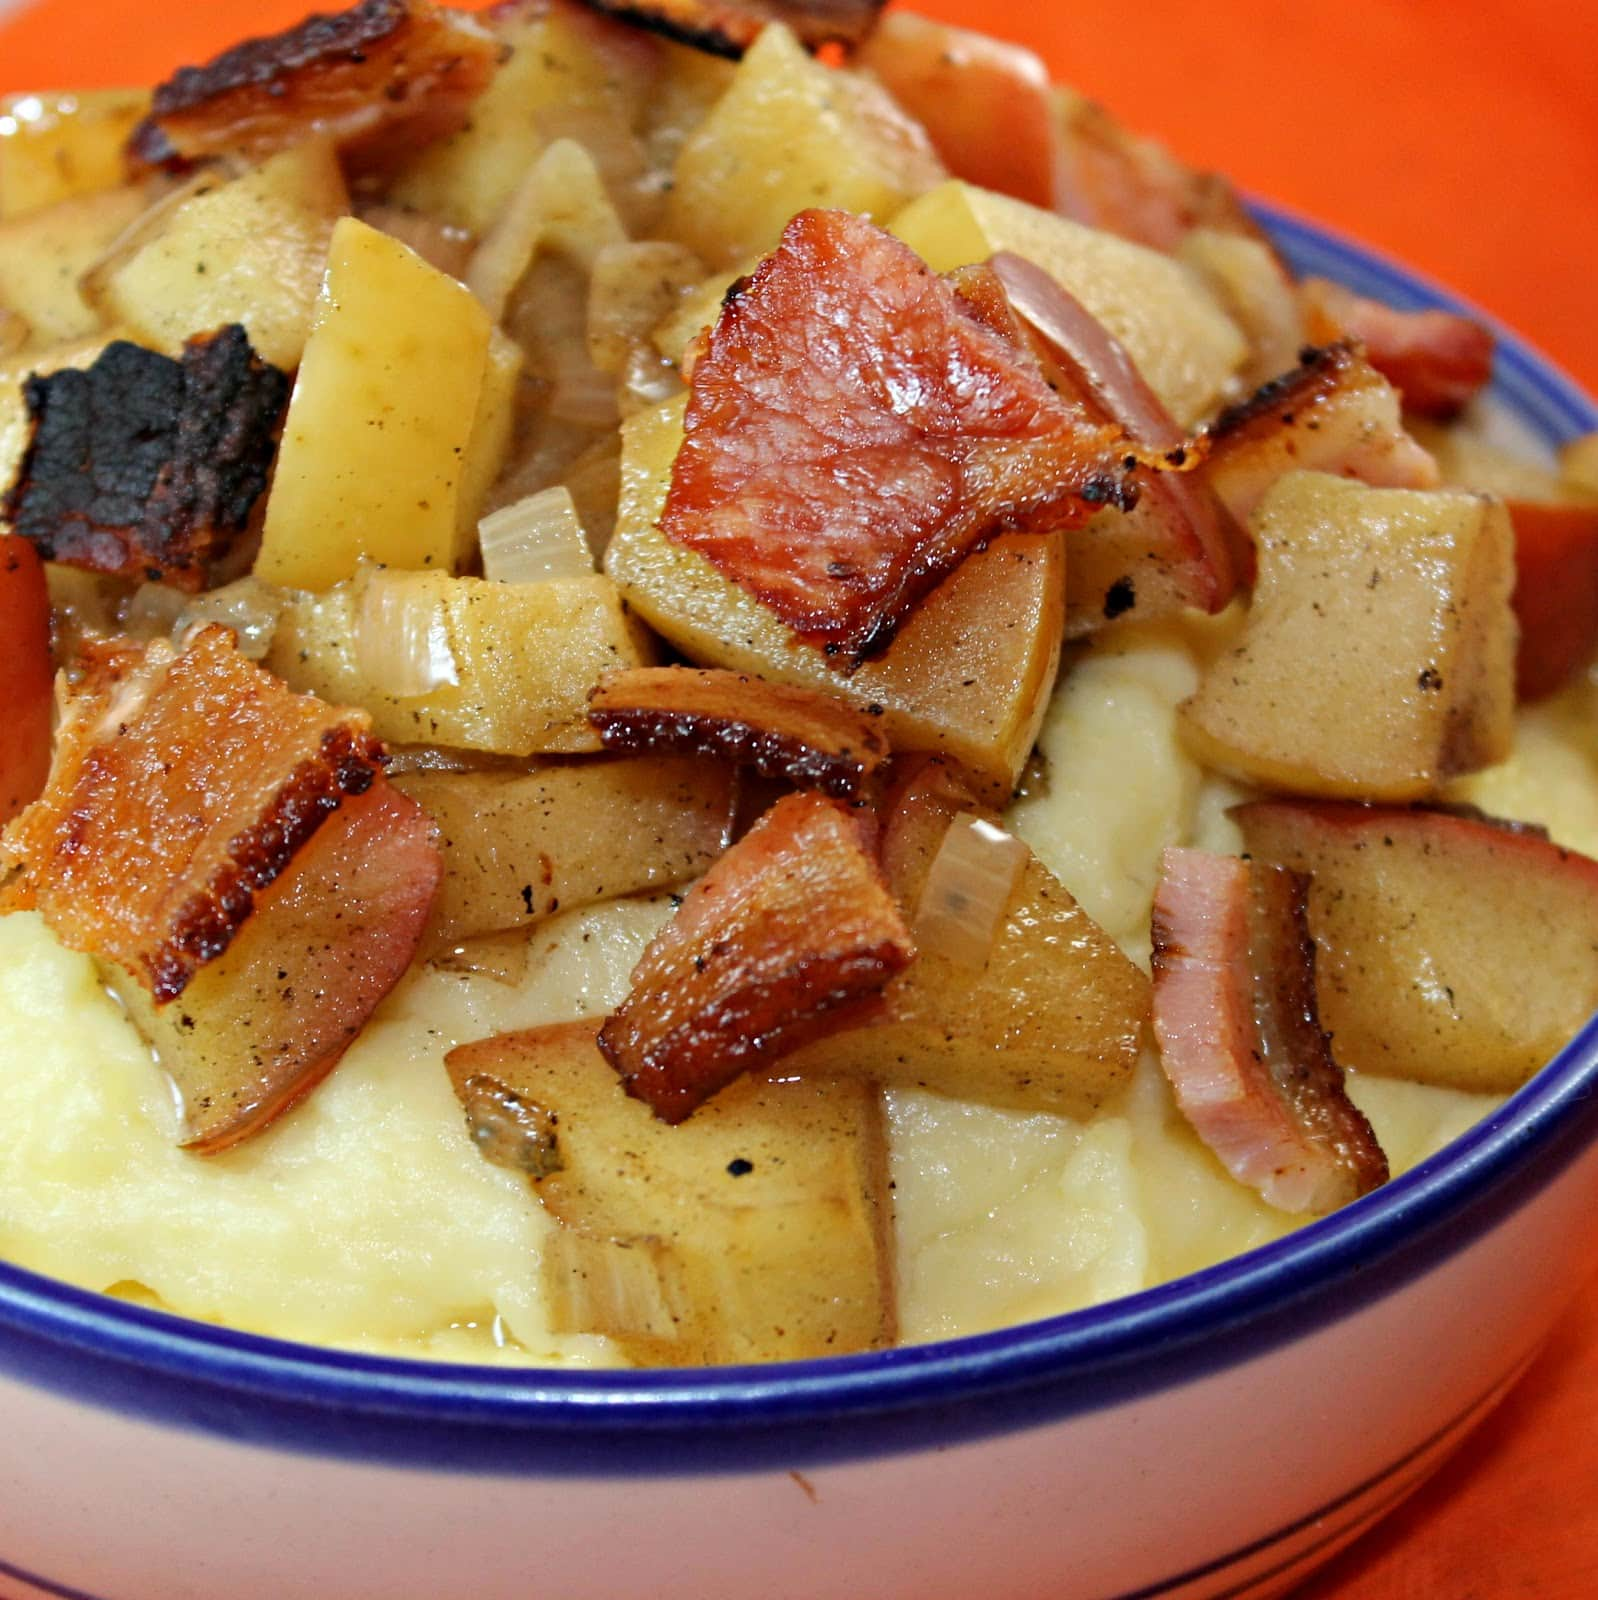 Horseradish Cheddar Mashed Potatoes with Bacon and Apples